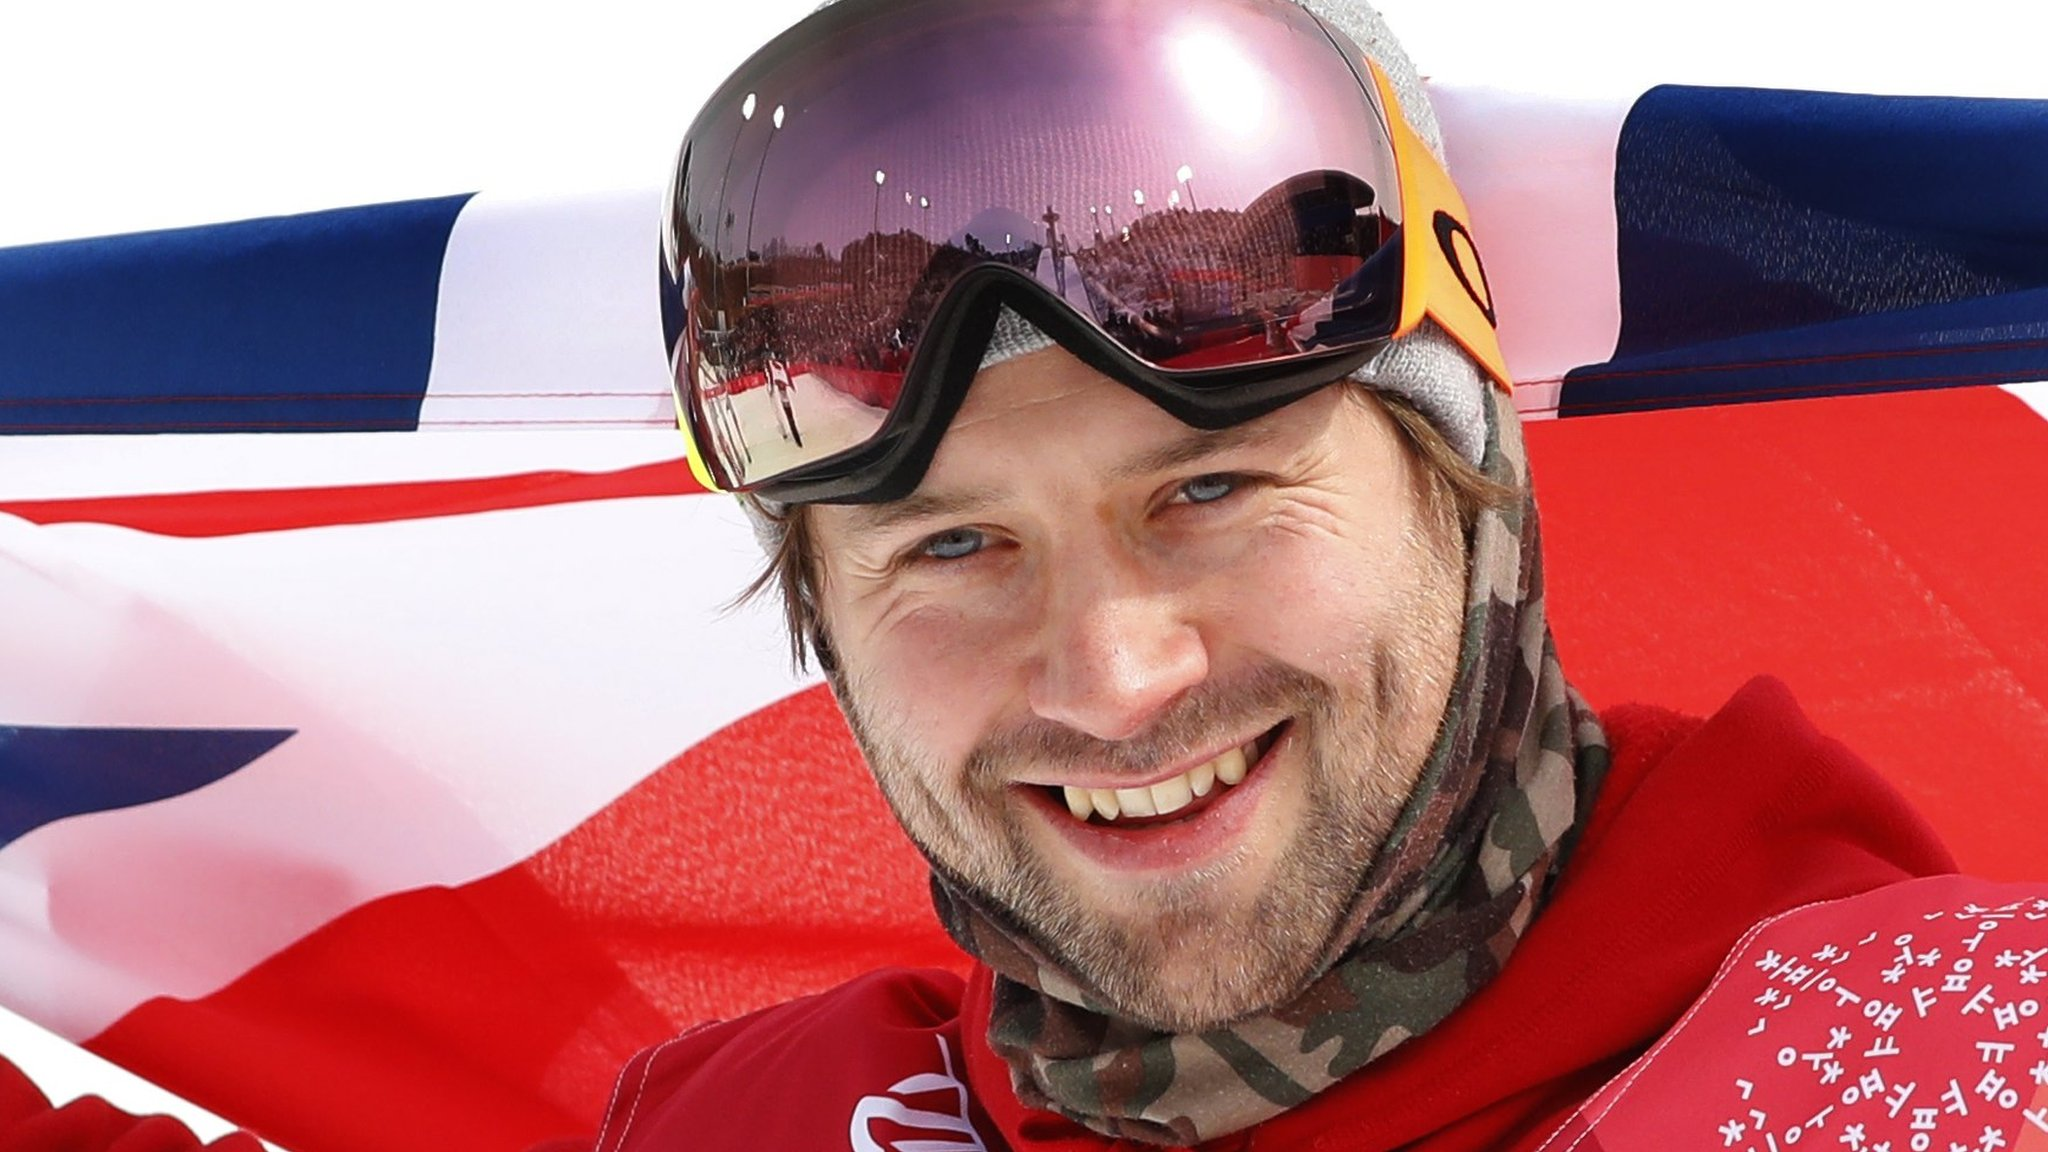 Winter Olympics: Billy Morgan wins Great Britain's record fifth medal in Pyeongchang